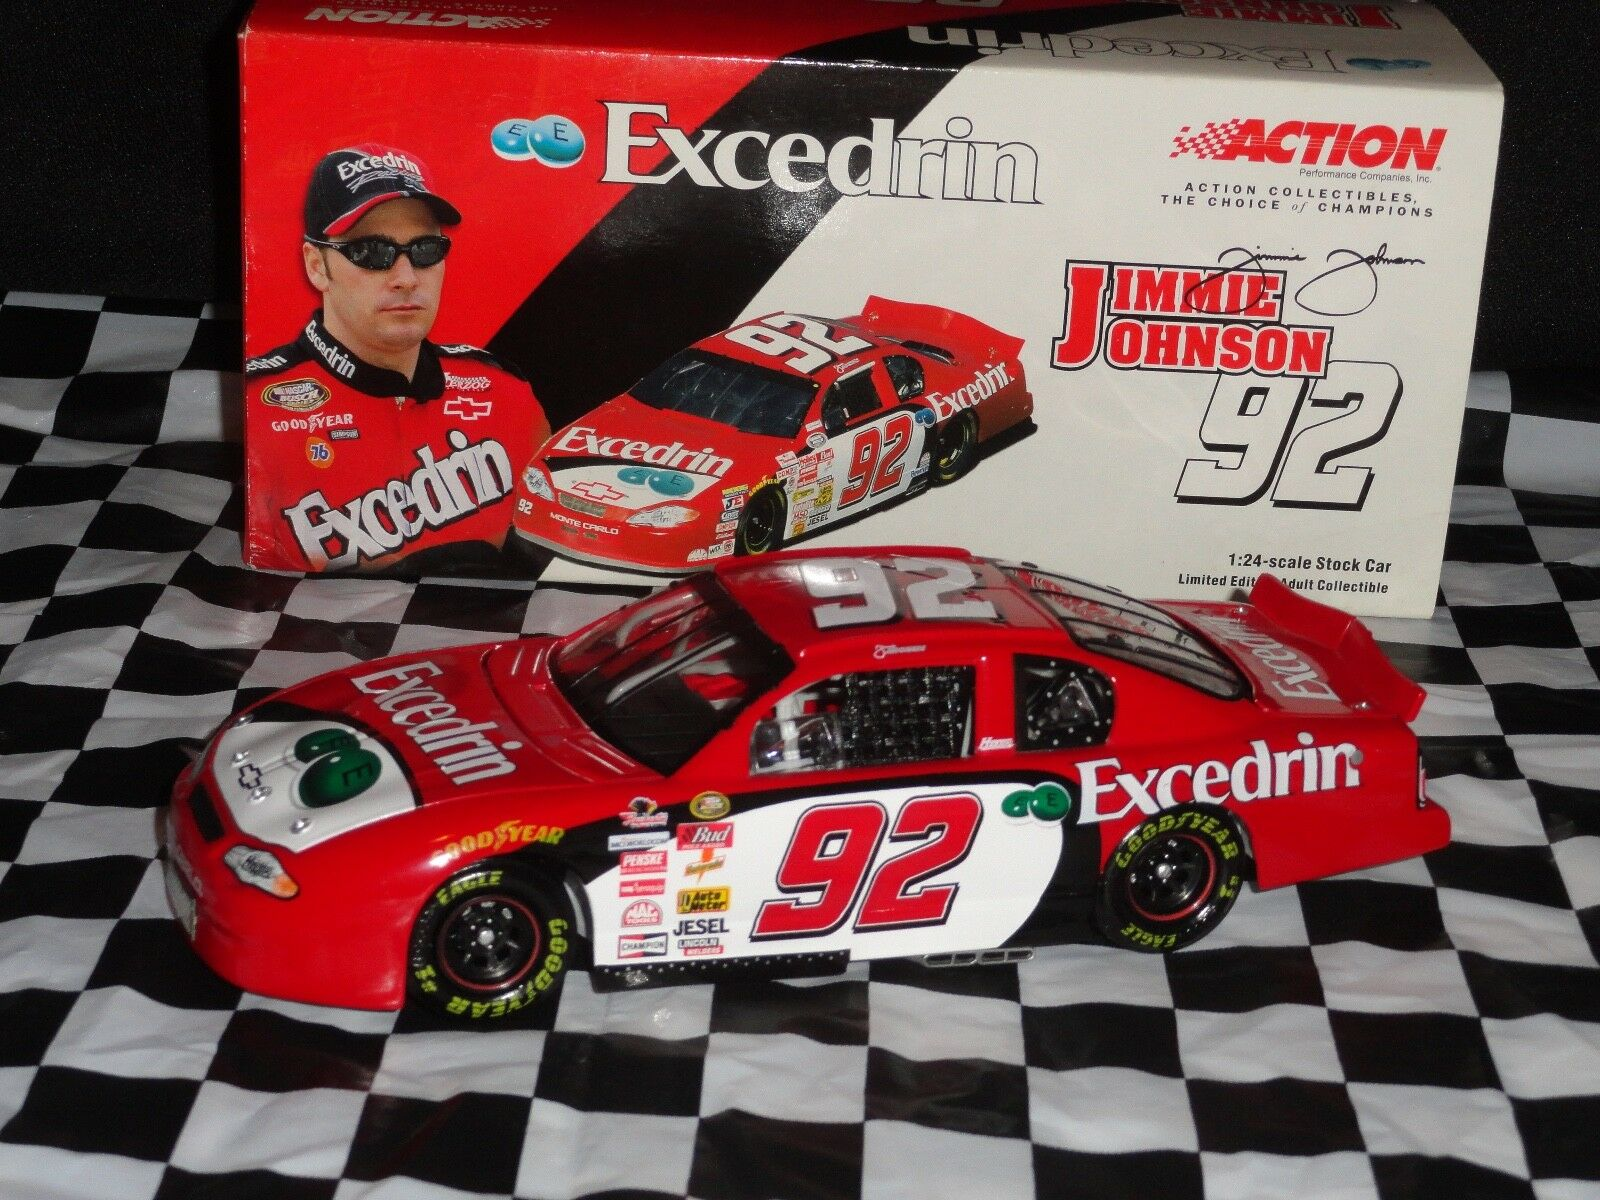 JIMMIE JOHNSON 2001 EXCEDRIN MONTE CARLO (ONLY BUSCH SERIES WIN CAR)